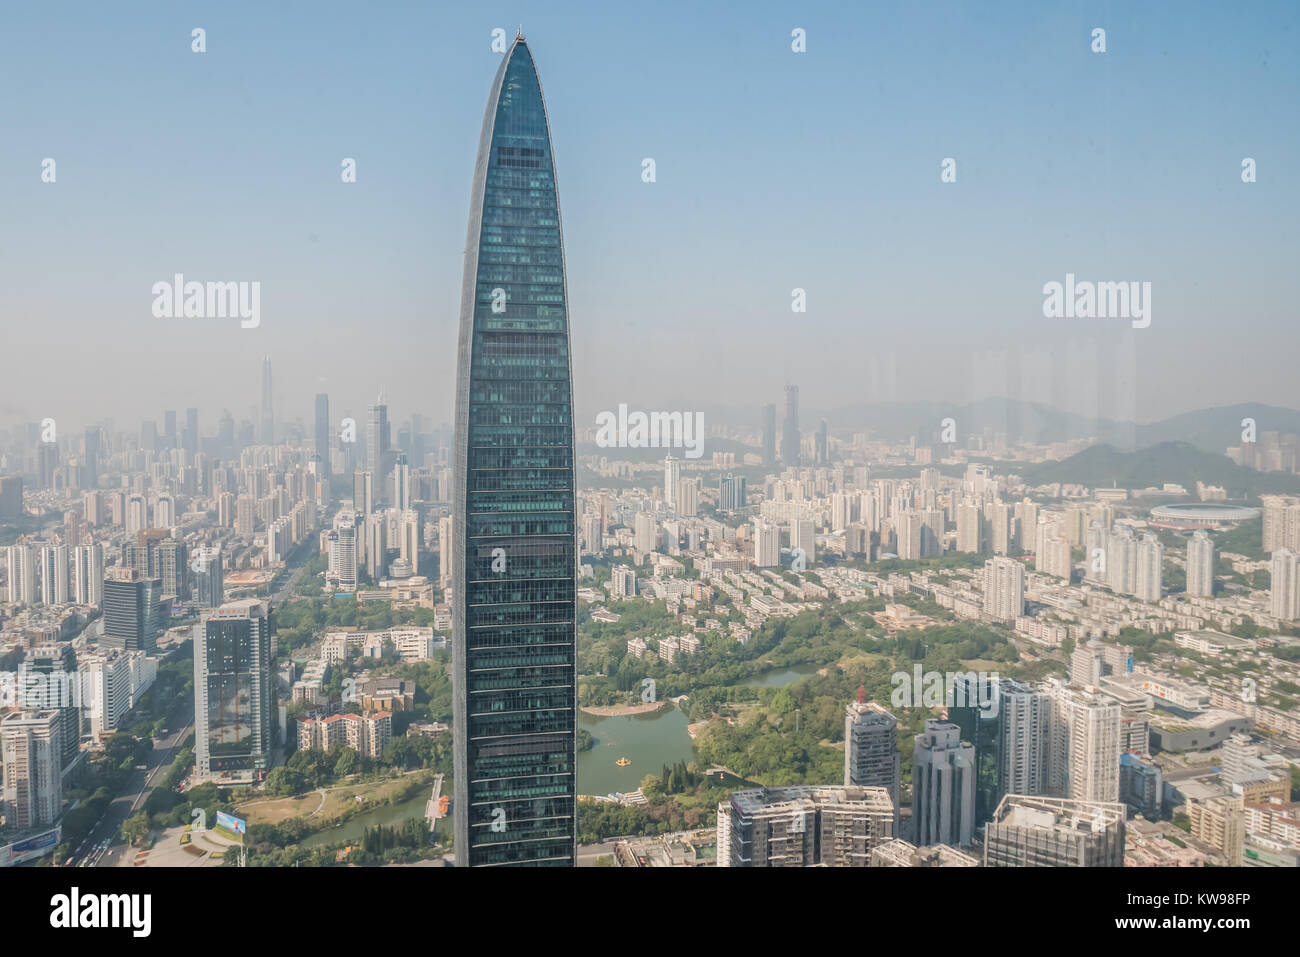 Shenzhen is an urban city in China - Stock Image